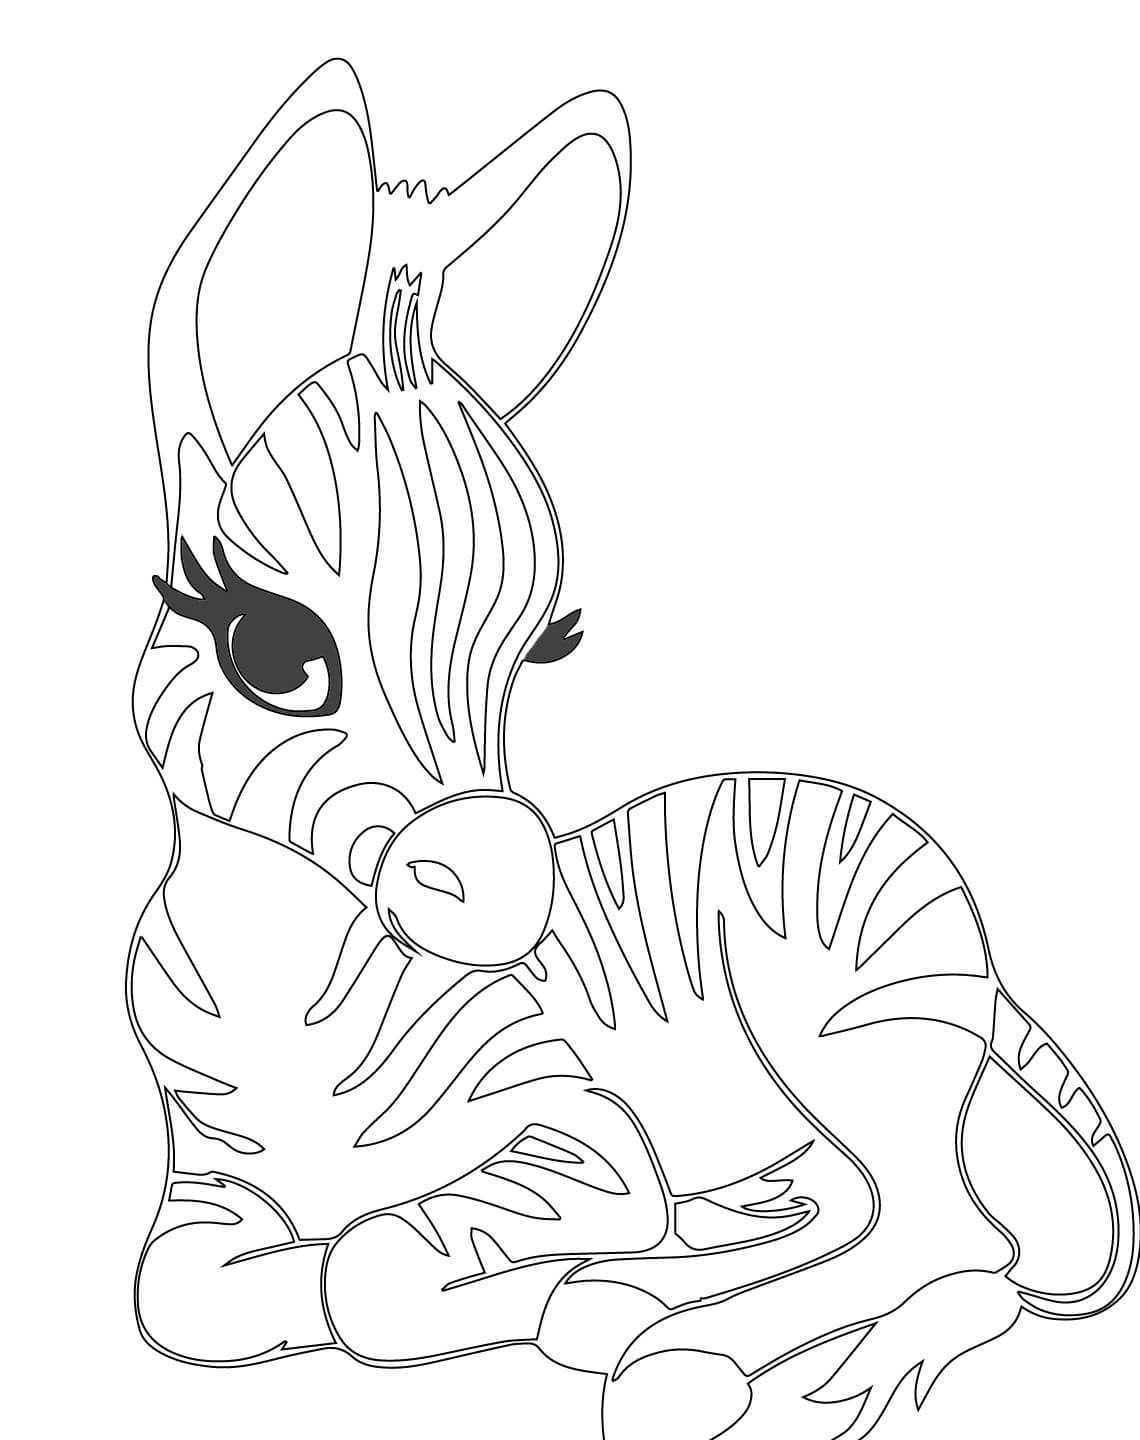 1140x1440 Baby Zebra Coloring Pictures Colouring For Funny Image Cute